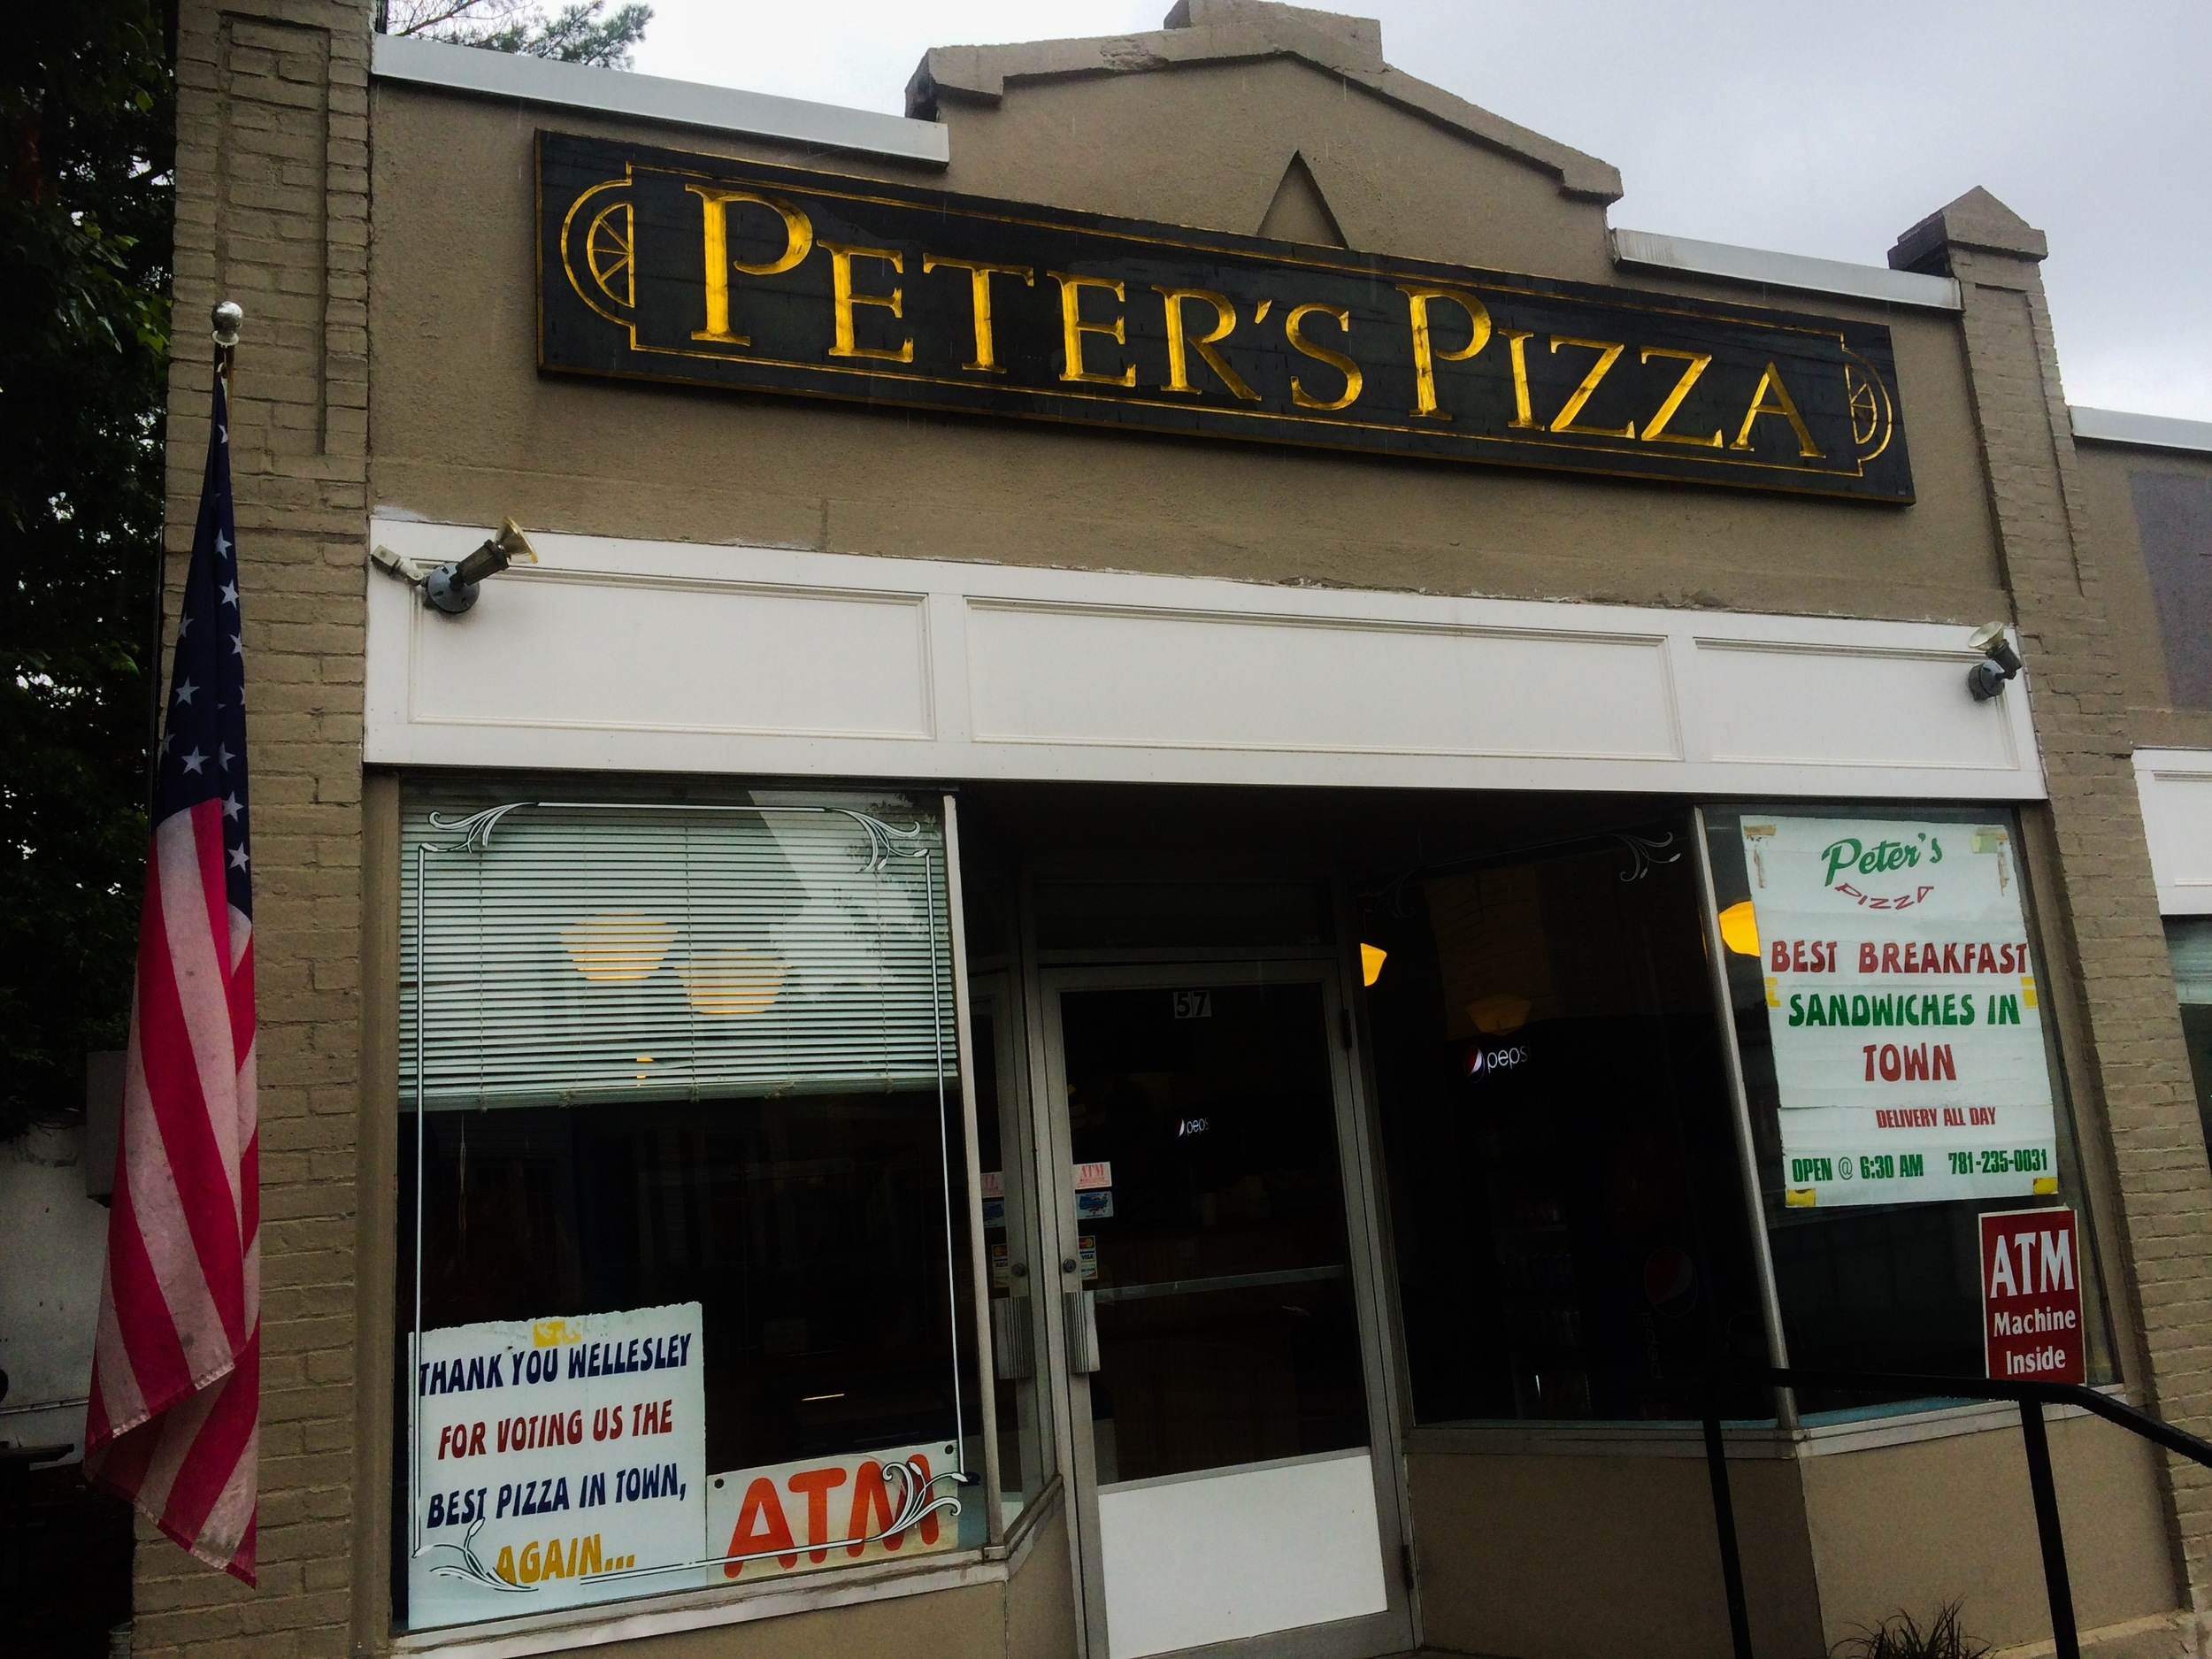 Peter's Pizza